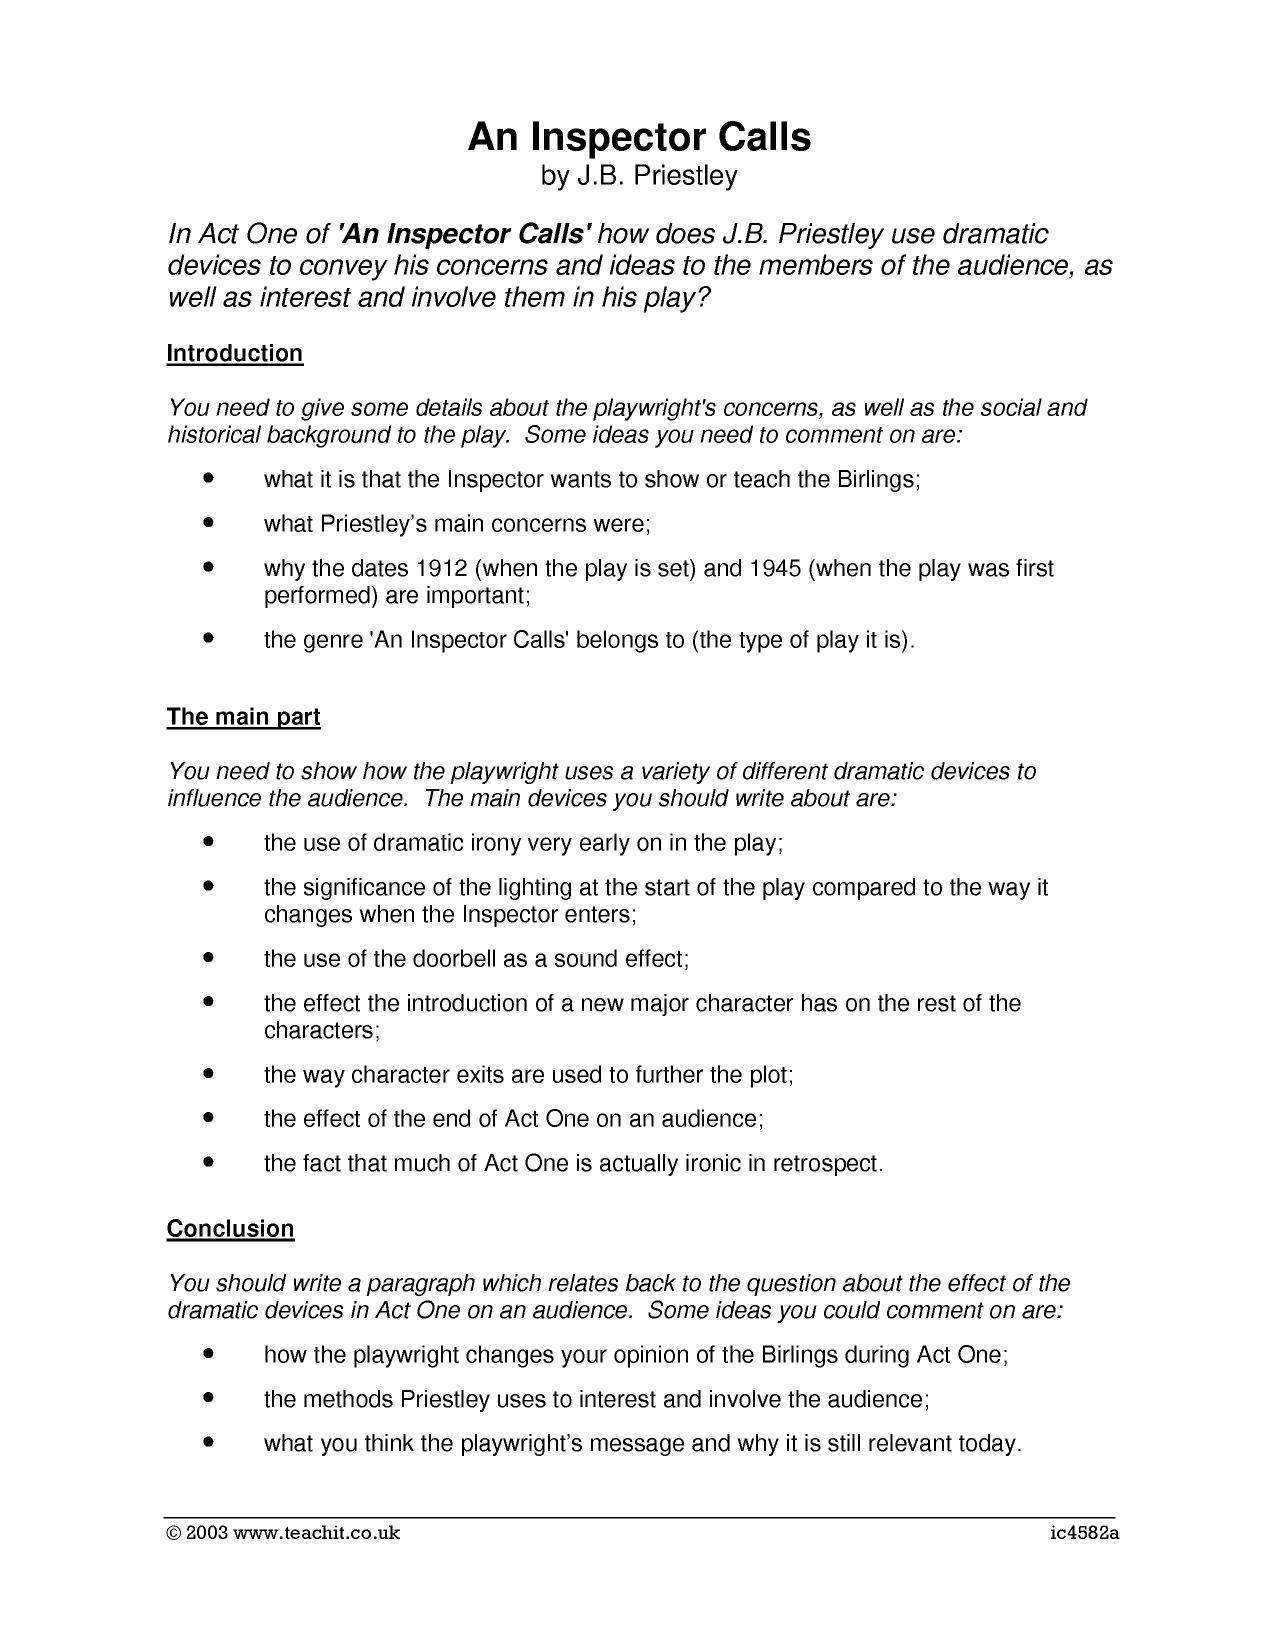 essay on inspector calls More essay examples on morality rubric mrs birling describes the charity as only'helping deserving cases', the word ' deserving' highlights mrs birling's uncharitable nature as all women who go to the charity are in need of some kind of help.